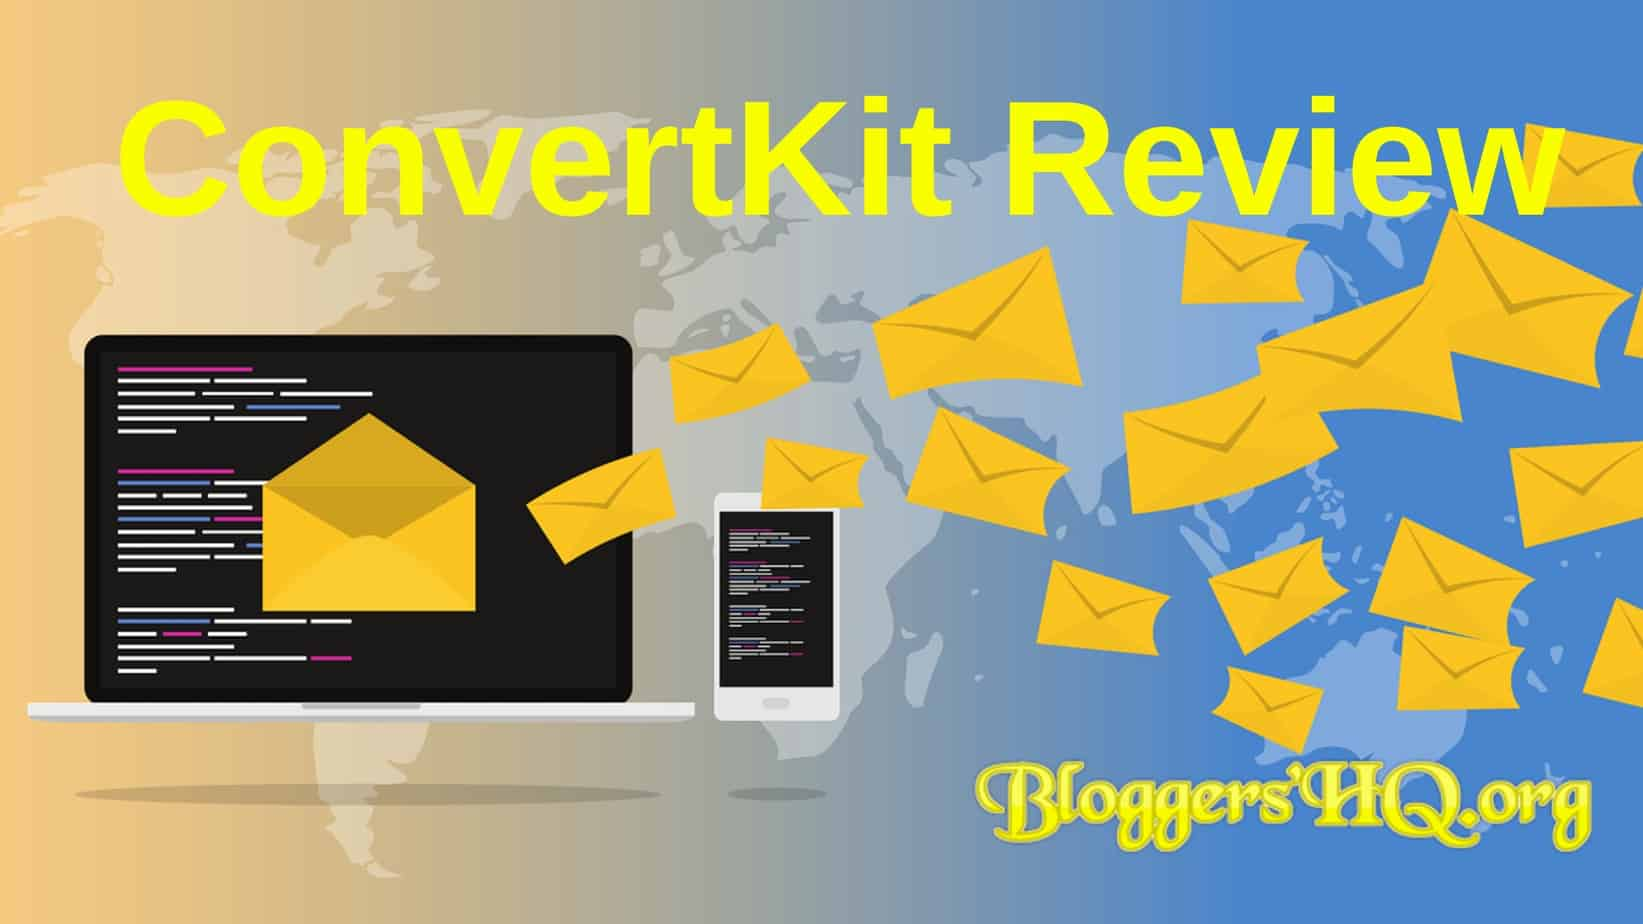 Email Marketing Convertkit 20% Off Coupon May 2020